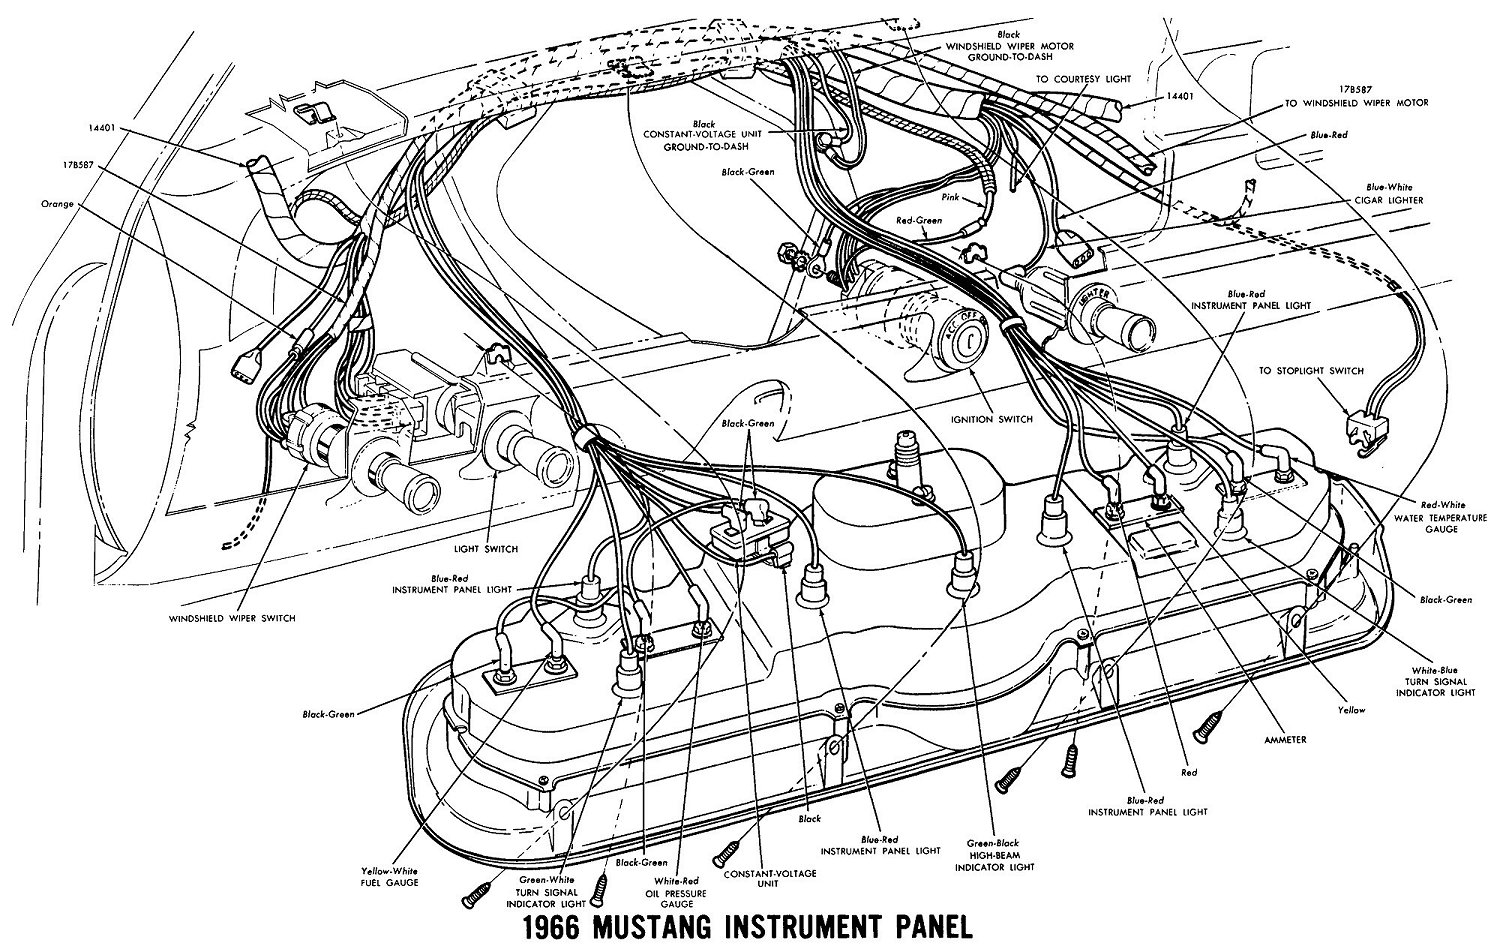 66InstrumentWiring lelu's 66 mustang 1966 mustang wiring diagrams 1966 mustang fog light wiring diagram at bakdesigns.co